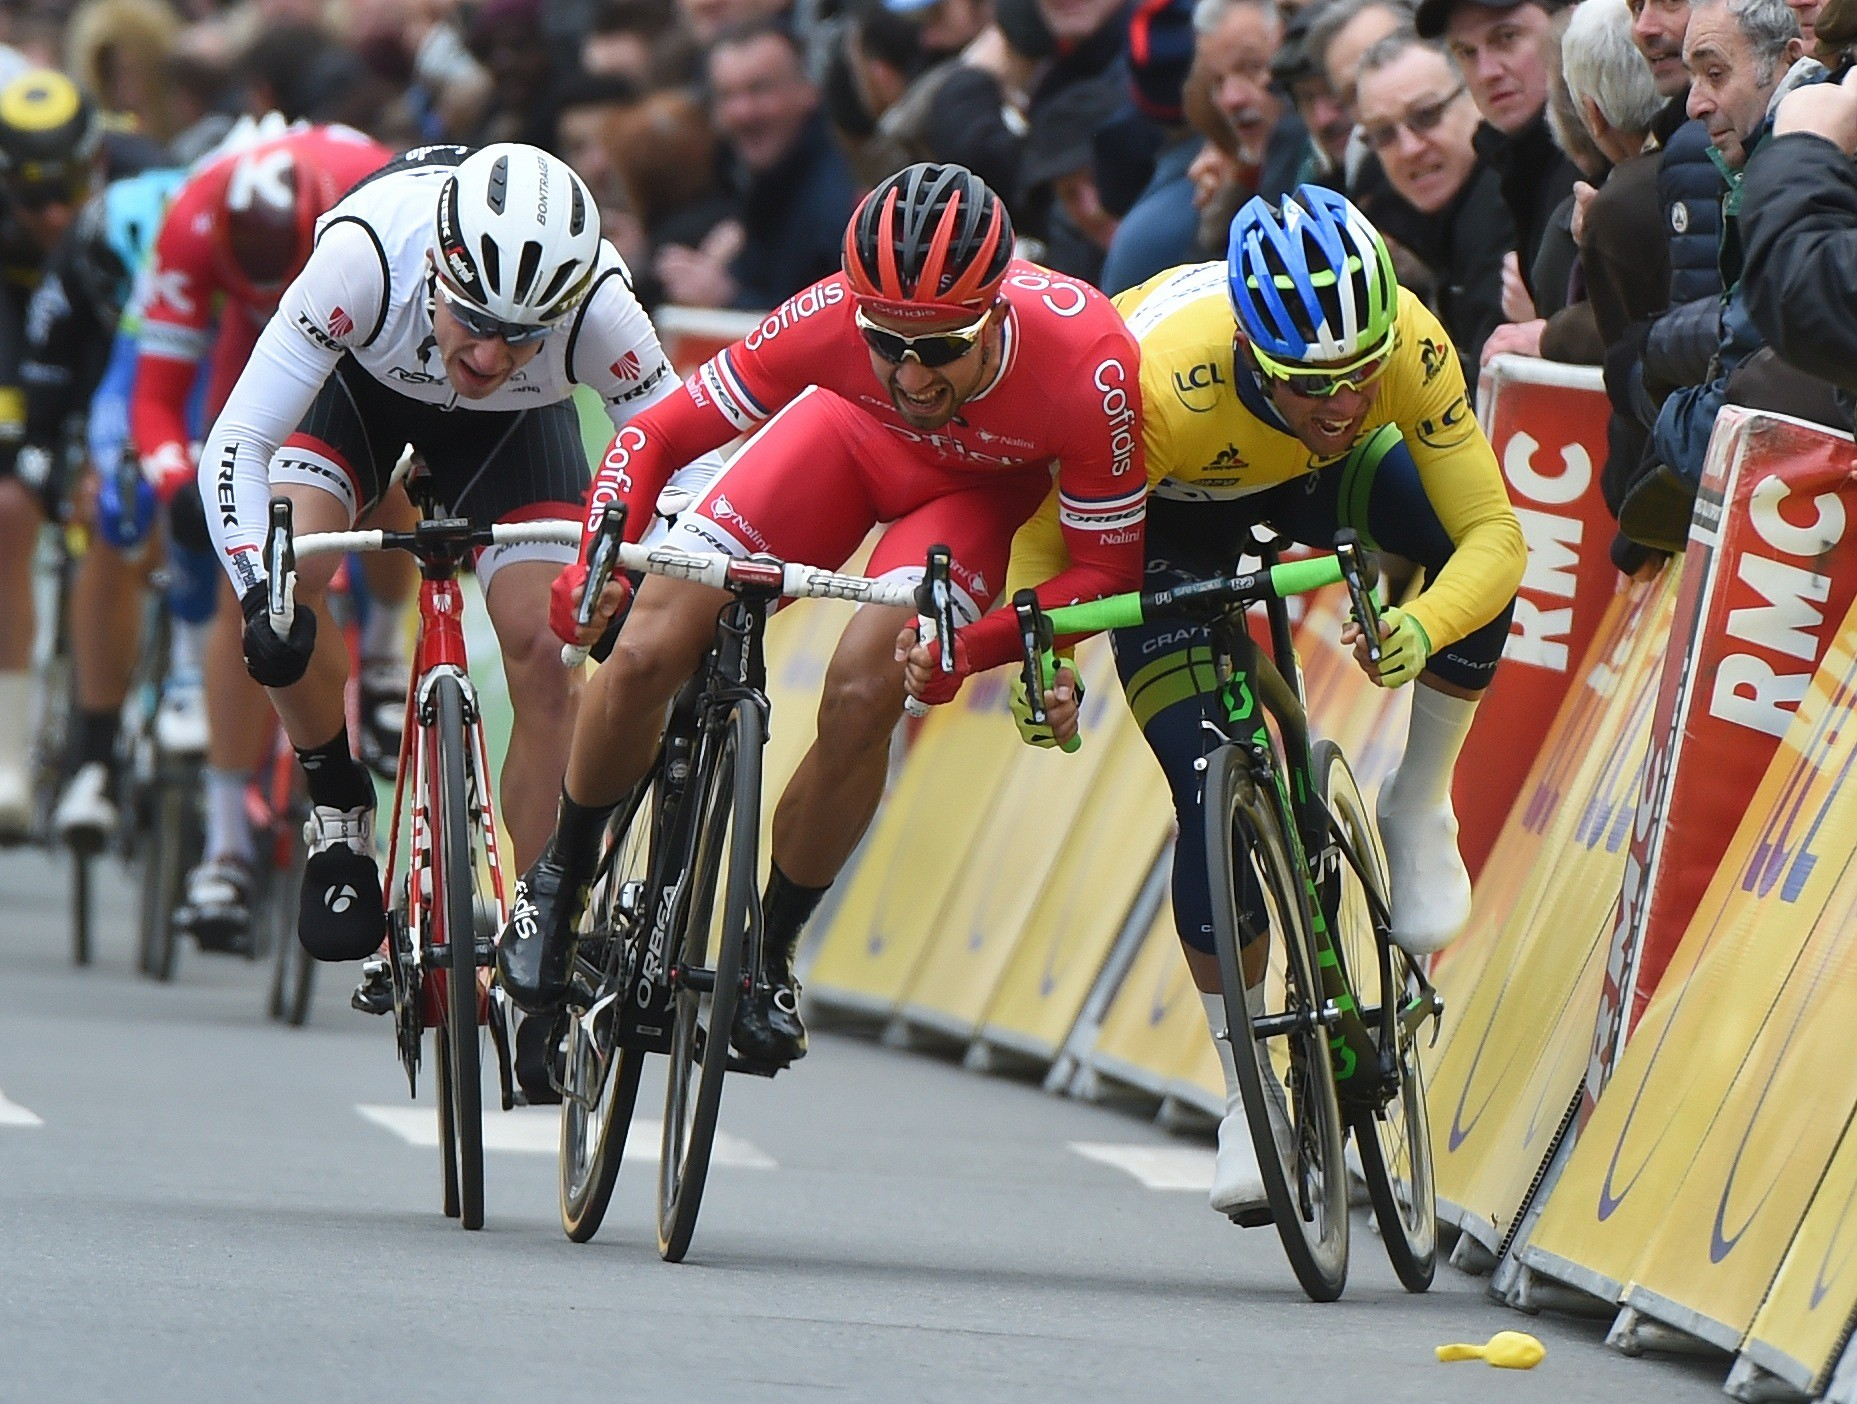 Nacer Bouhanni (Cofidis) battles Michael Matthews (Orica-GreenEdge) for pole position at Paris-Nice